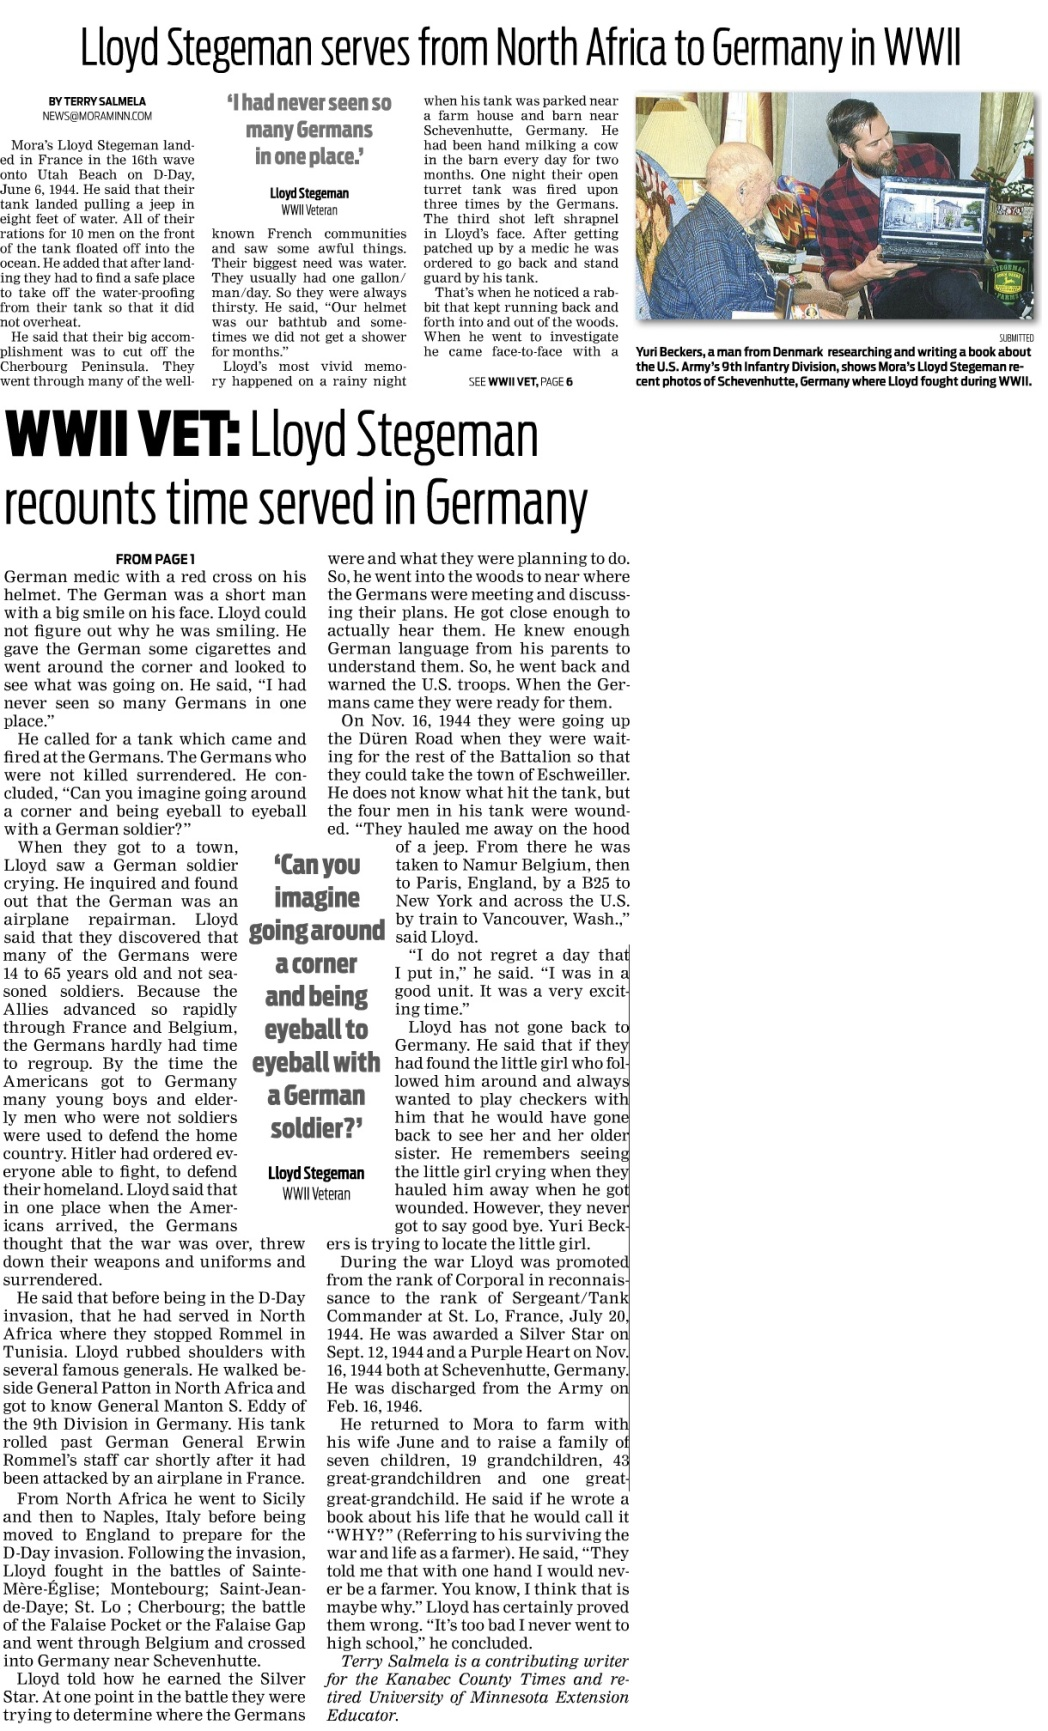 Article Lloyd Stegeman meet Yuri Beckers Part II. Published in the Kanabec County Times on November 12th, 2015.